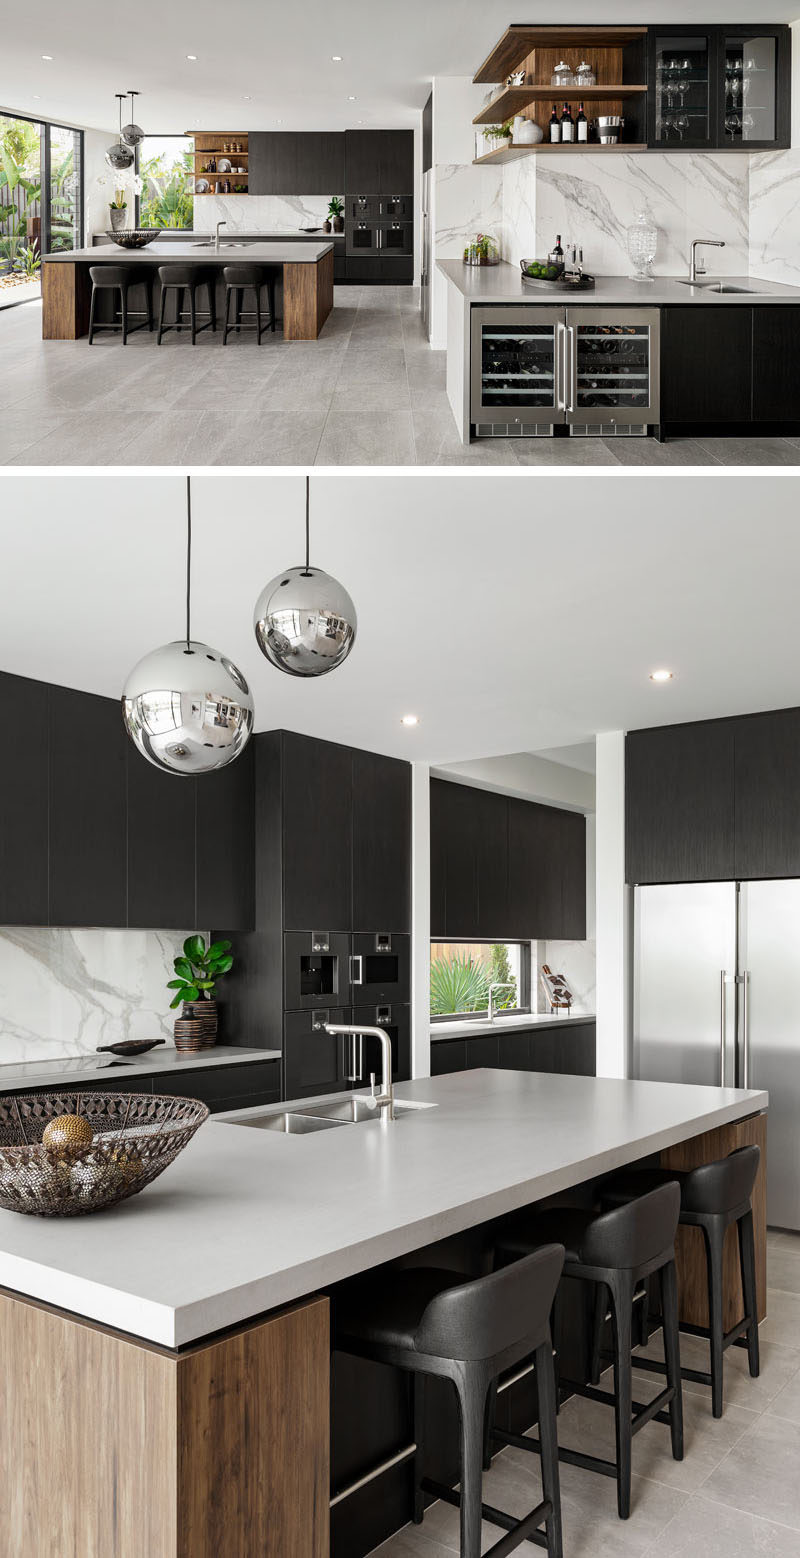 A modern kitchen divided into two areas, has the main kitchen with a large island, while adjacent to it, is a wet bar with storage for glasses, a small sink, and two small built-in fridges.